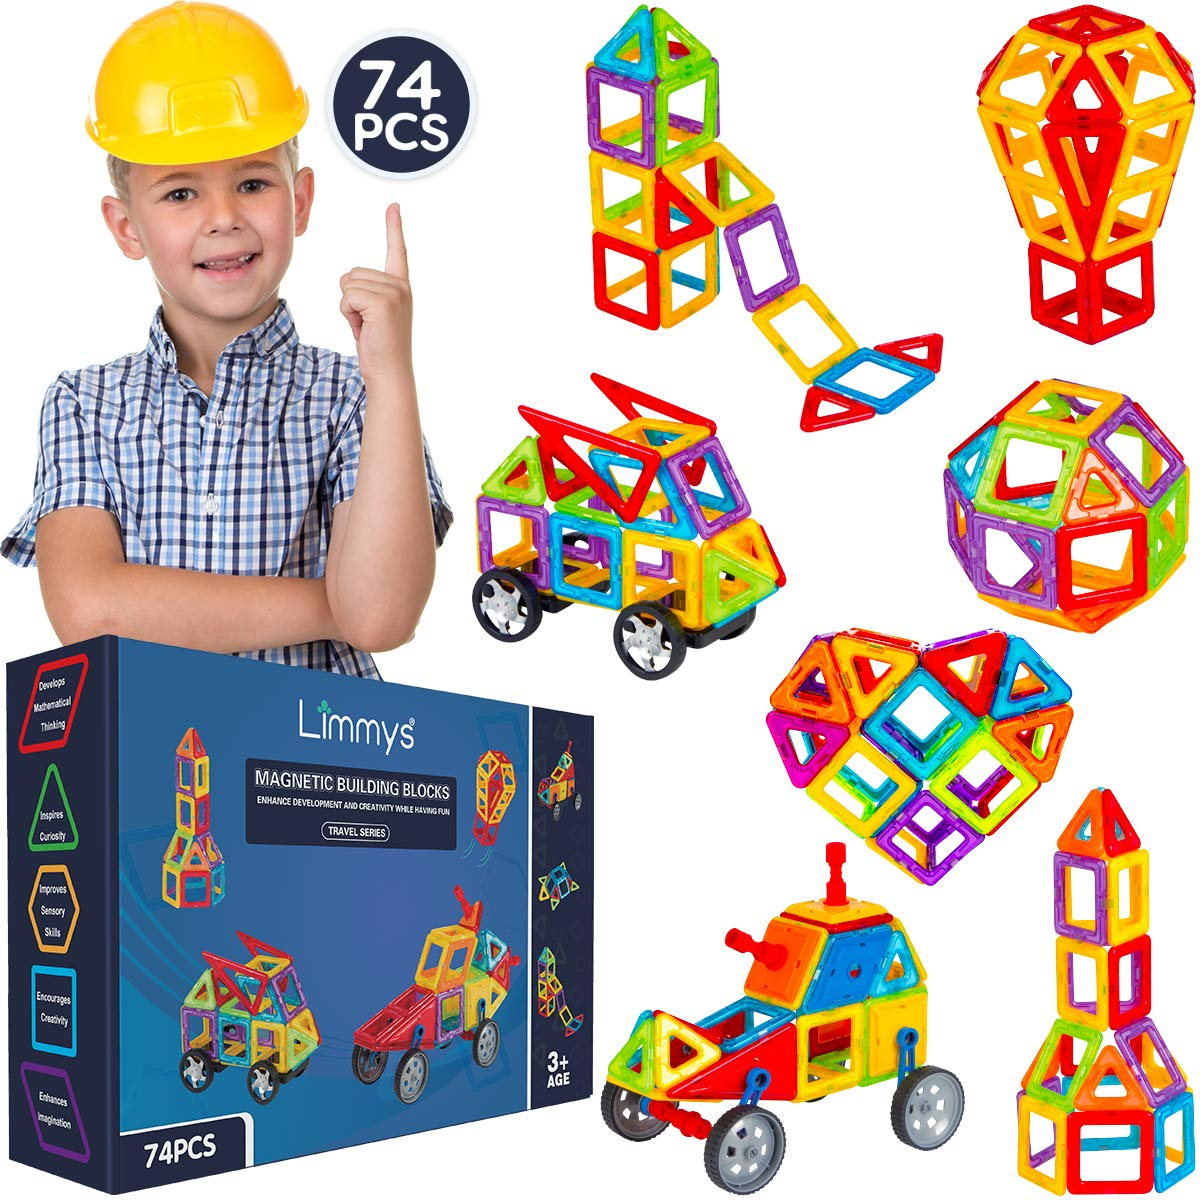 Limmys Magnetic Building Blocks Construction